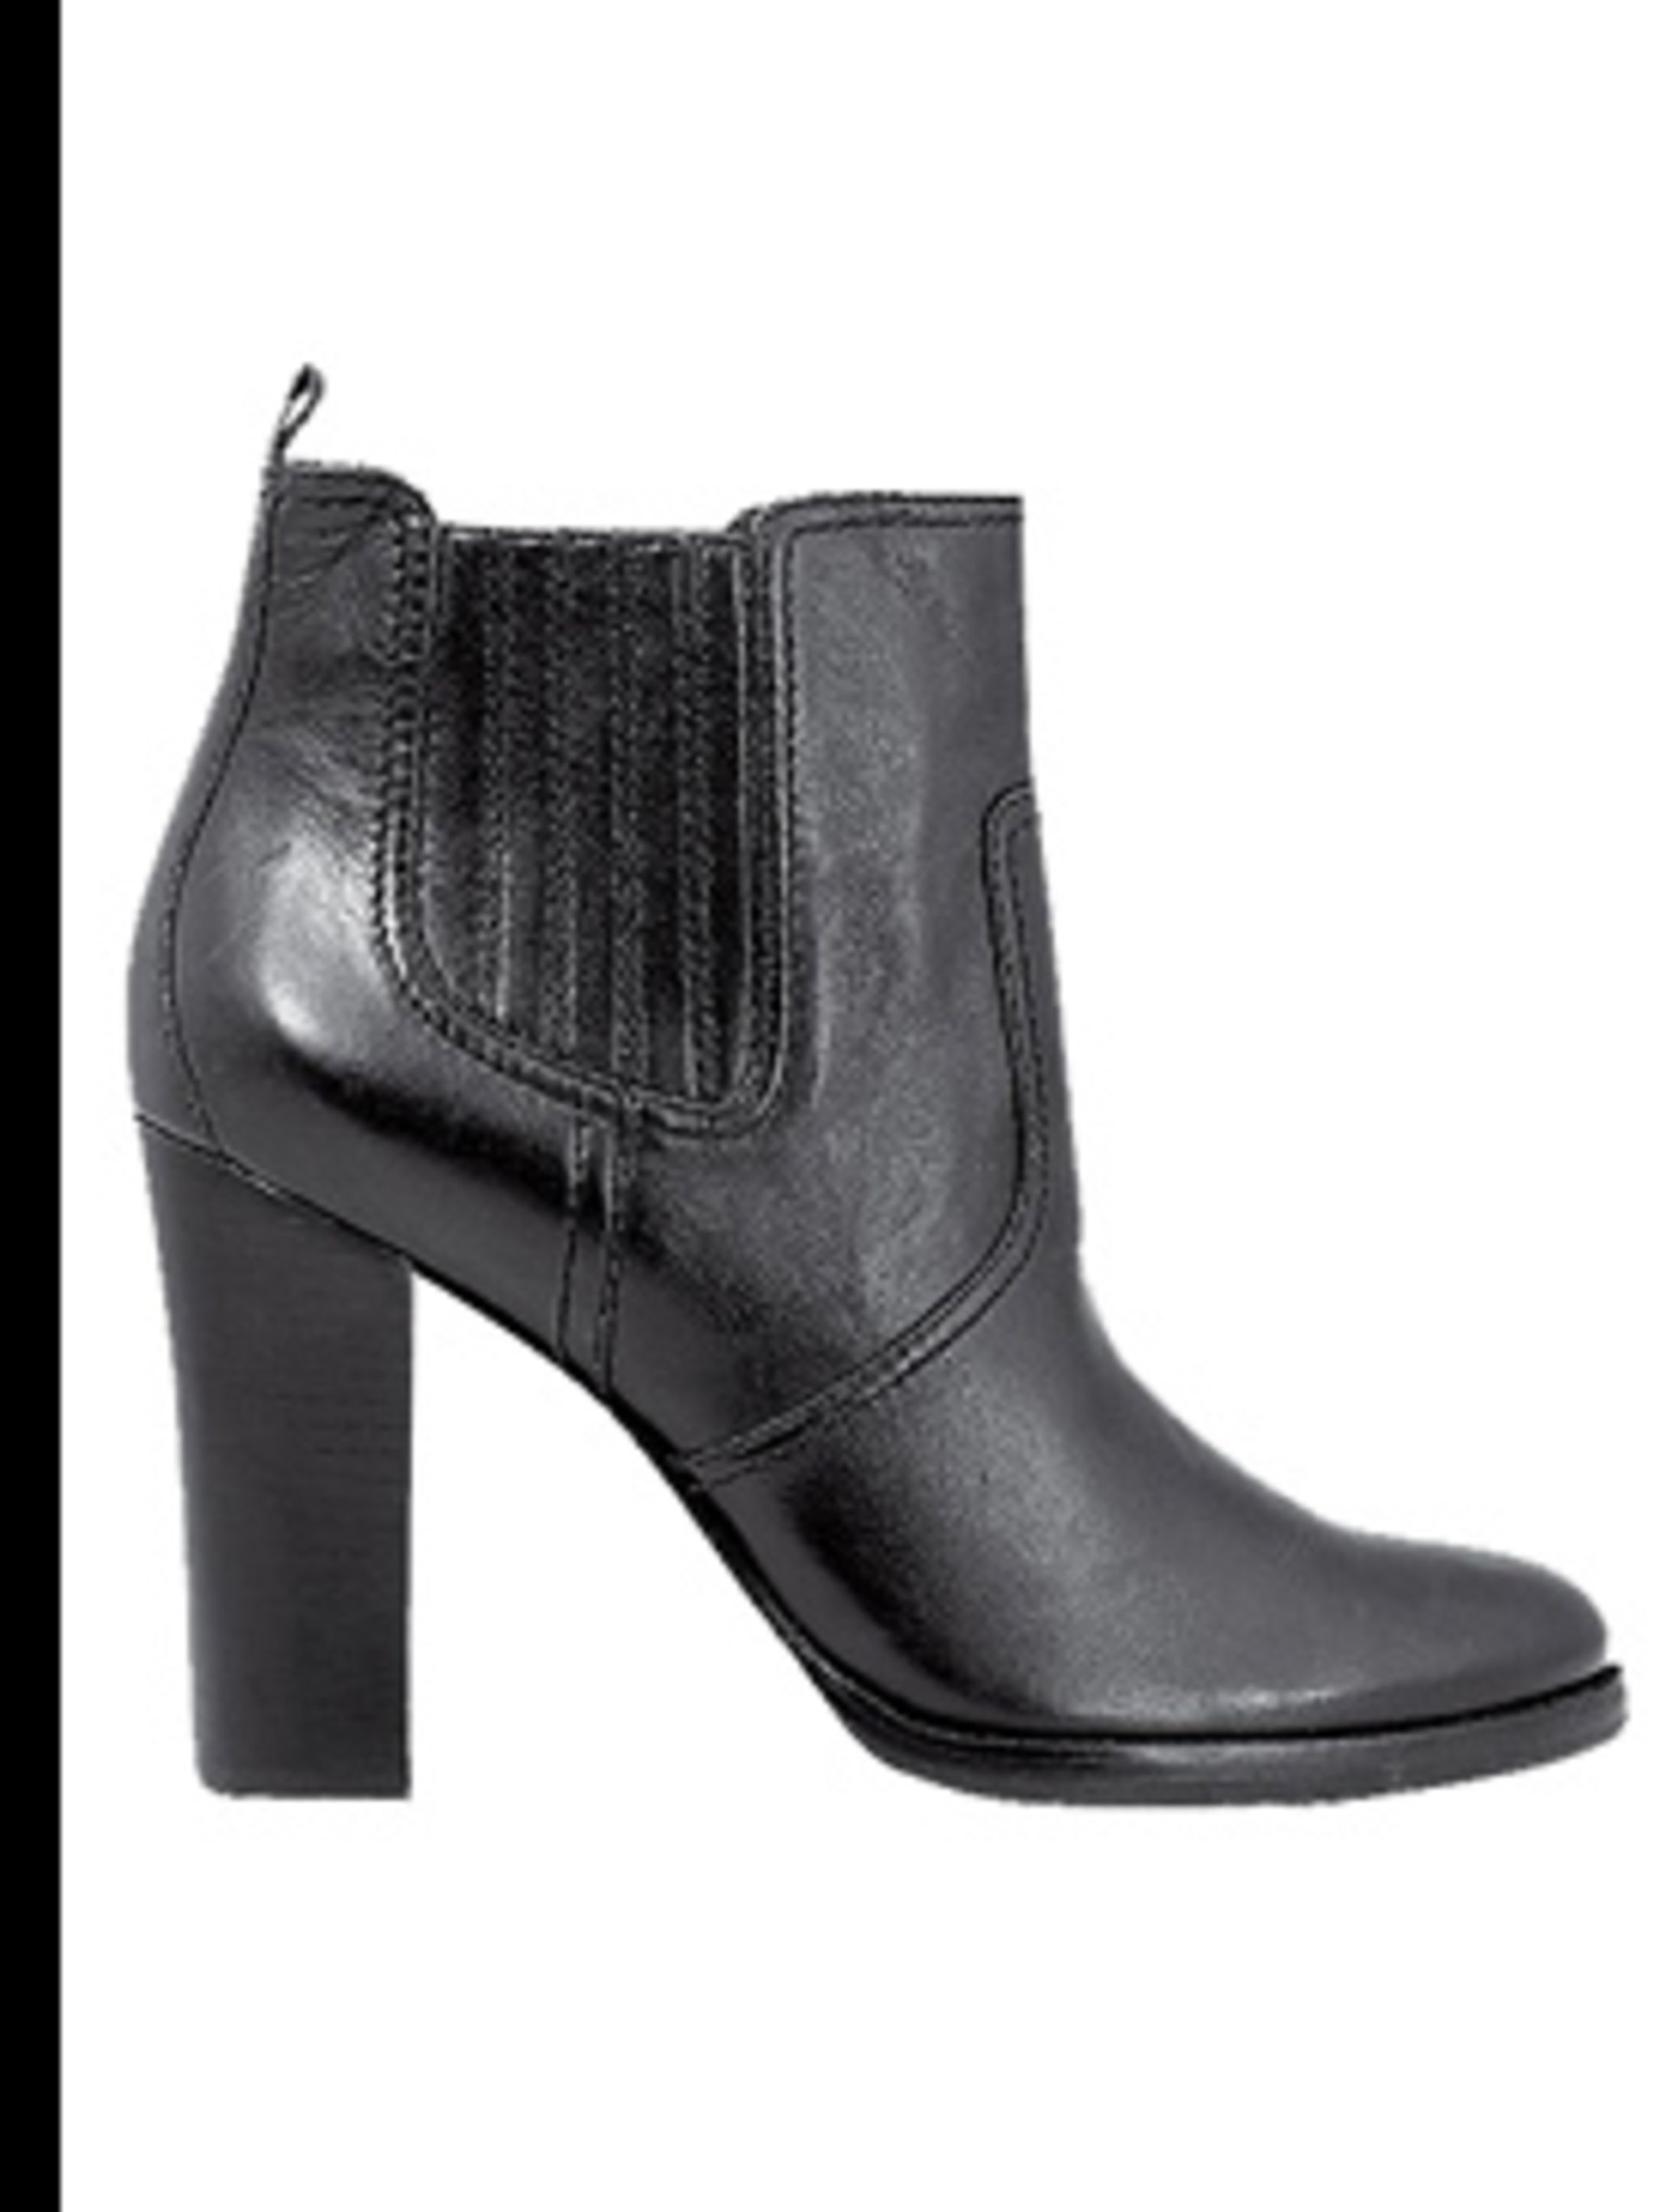 <p>Ankle boots £65 by Pierre Hardy at Gap</p>